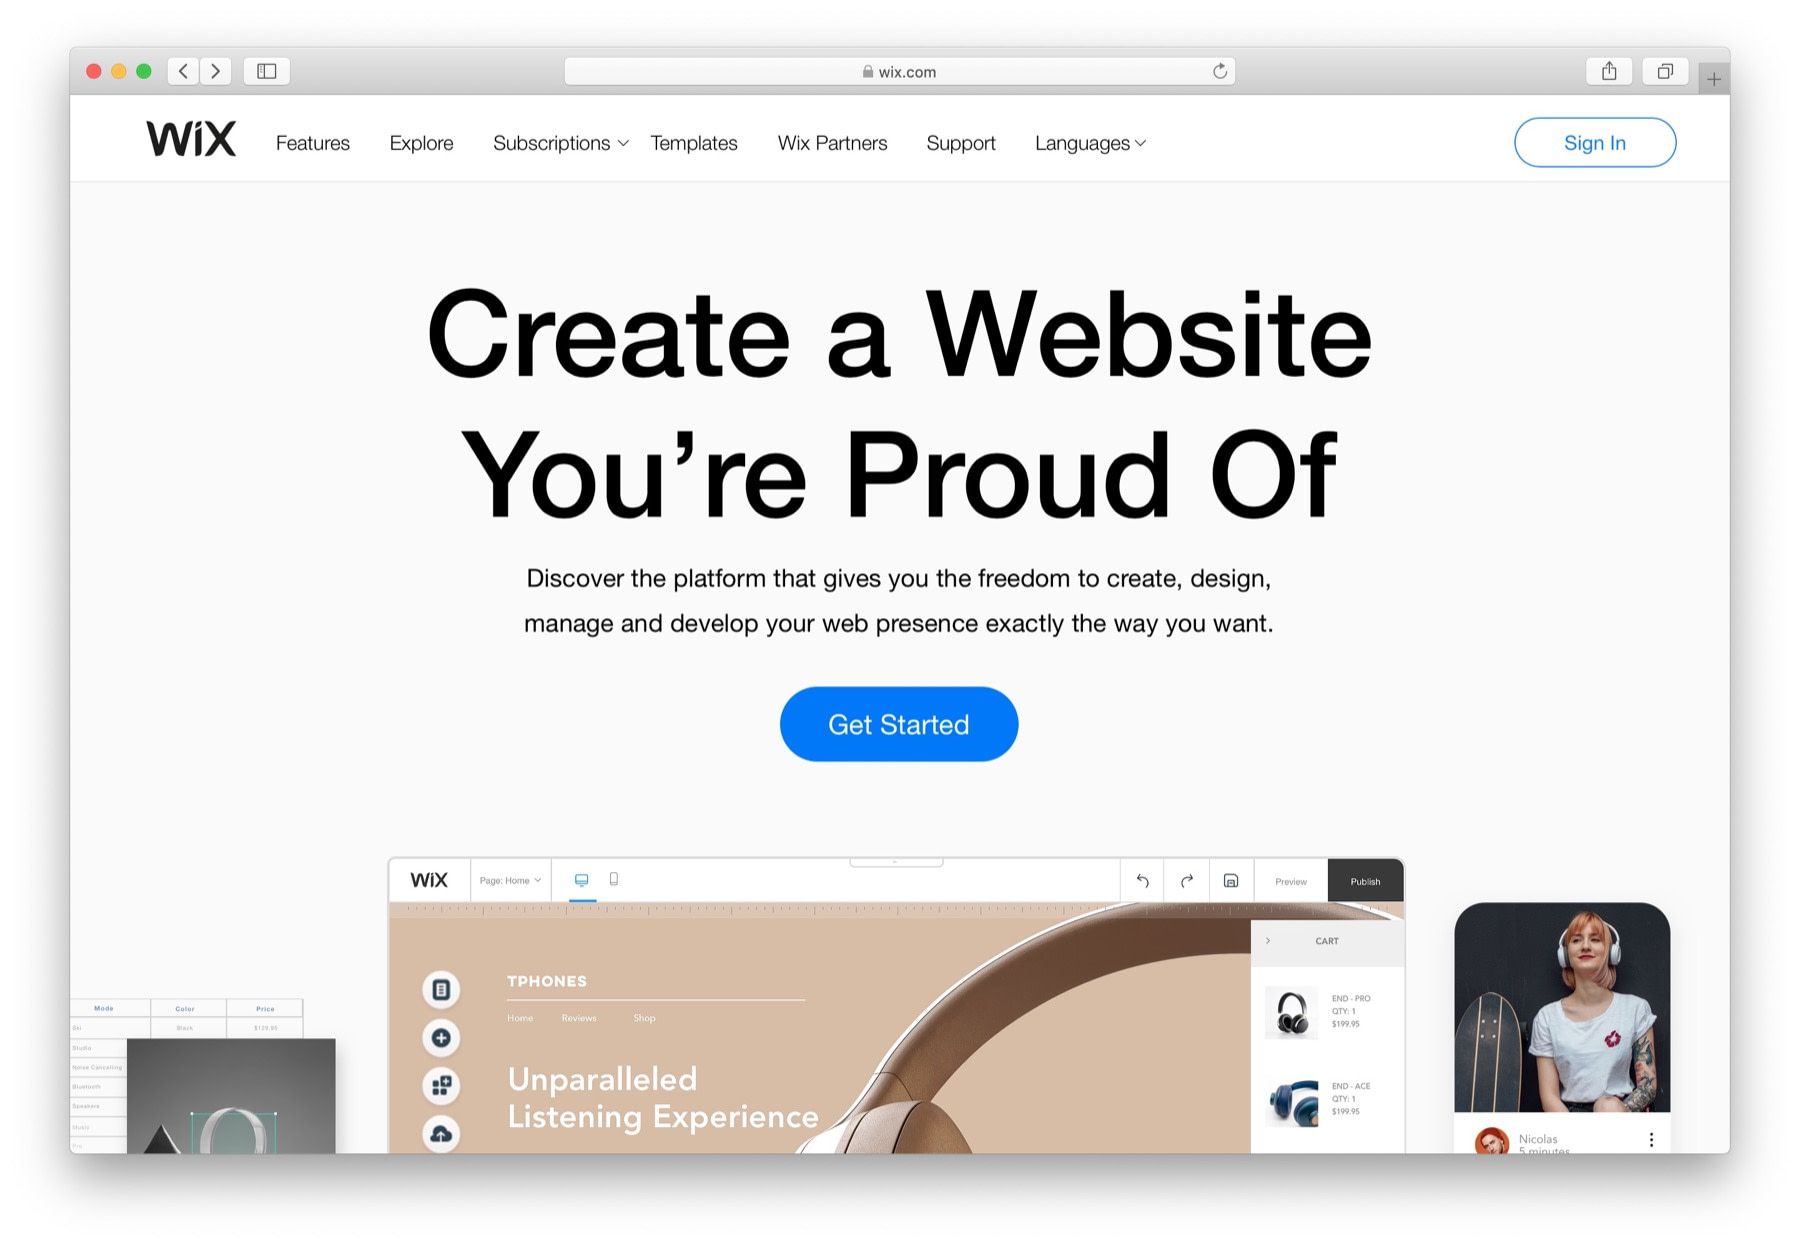 Best website builder for small business: #1 wix